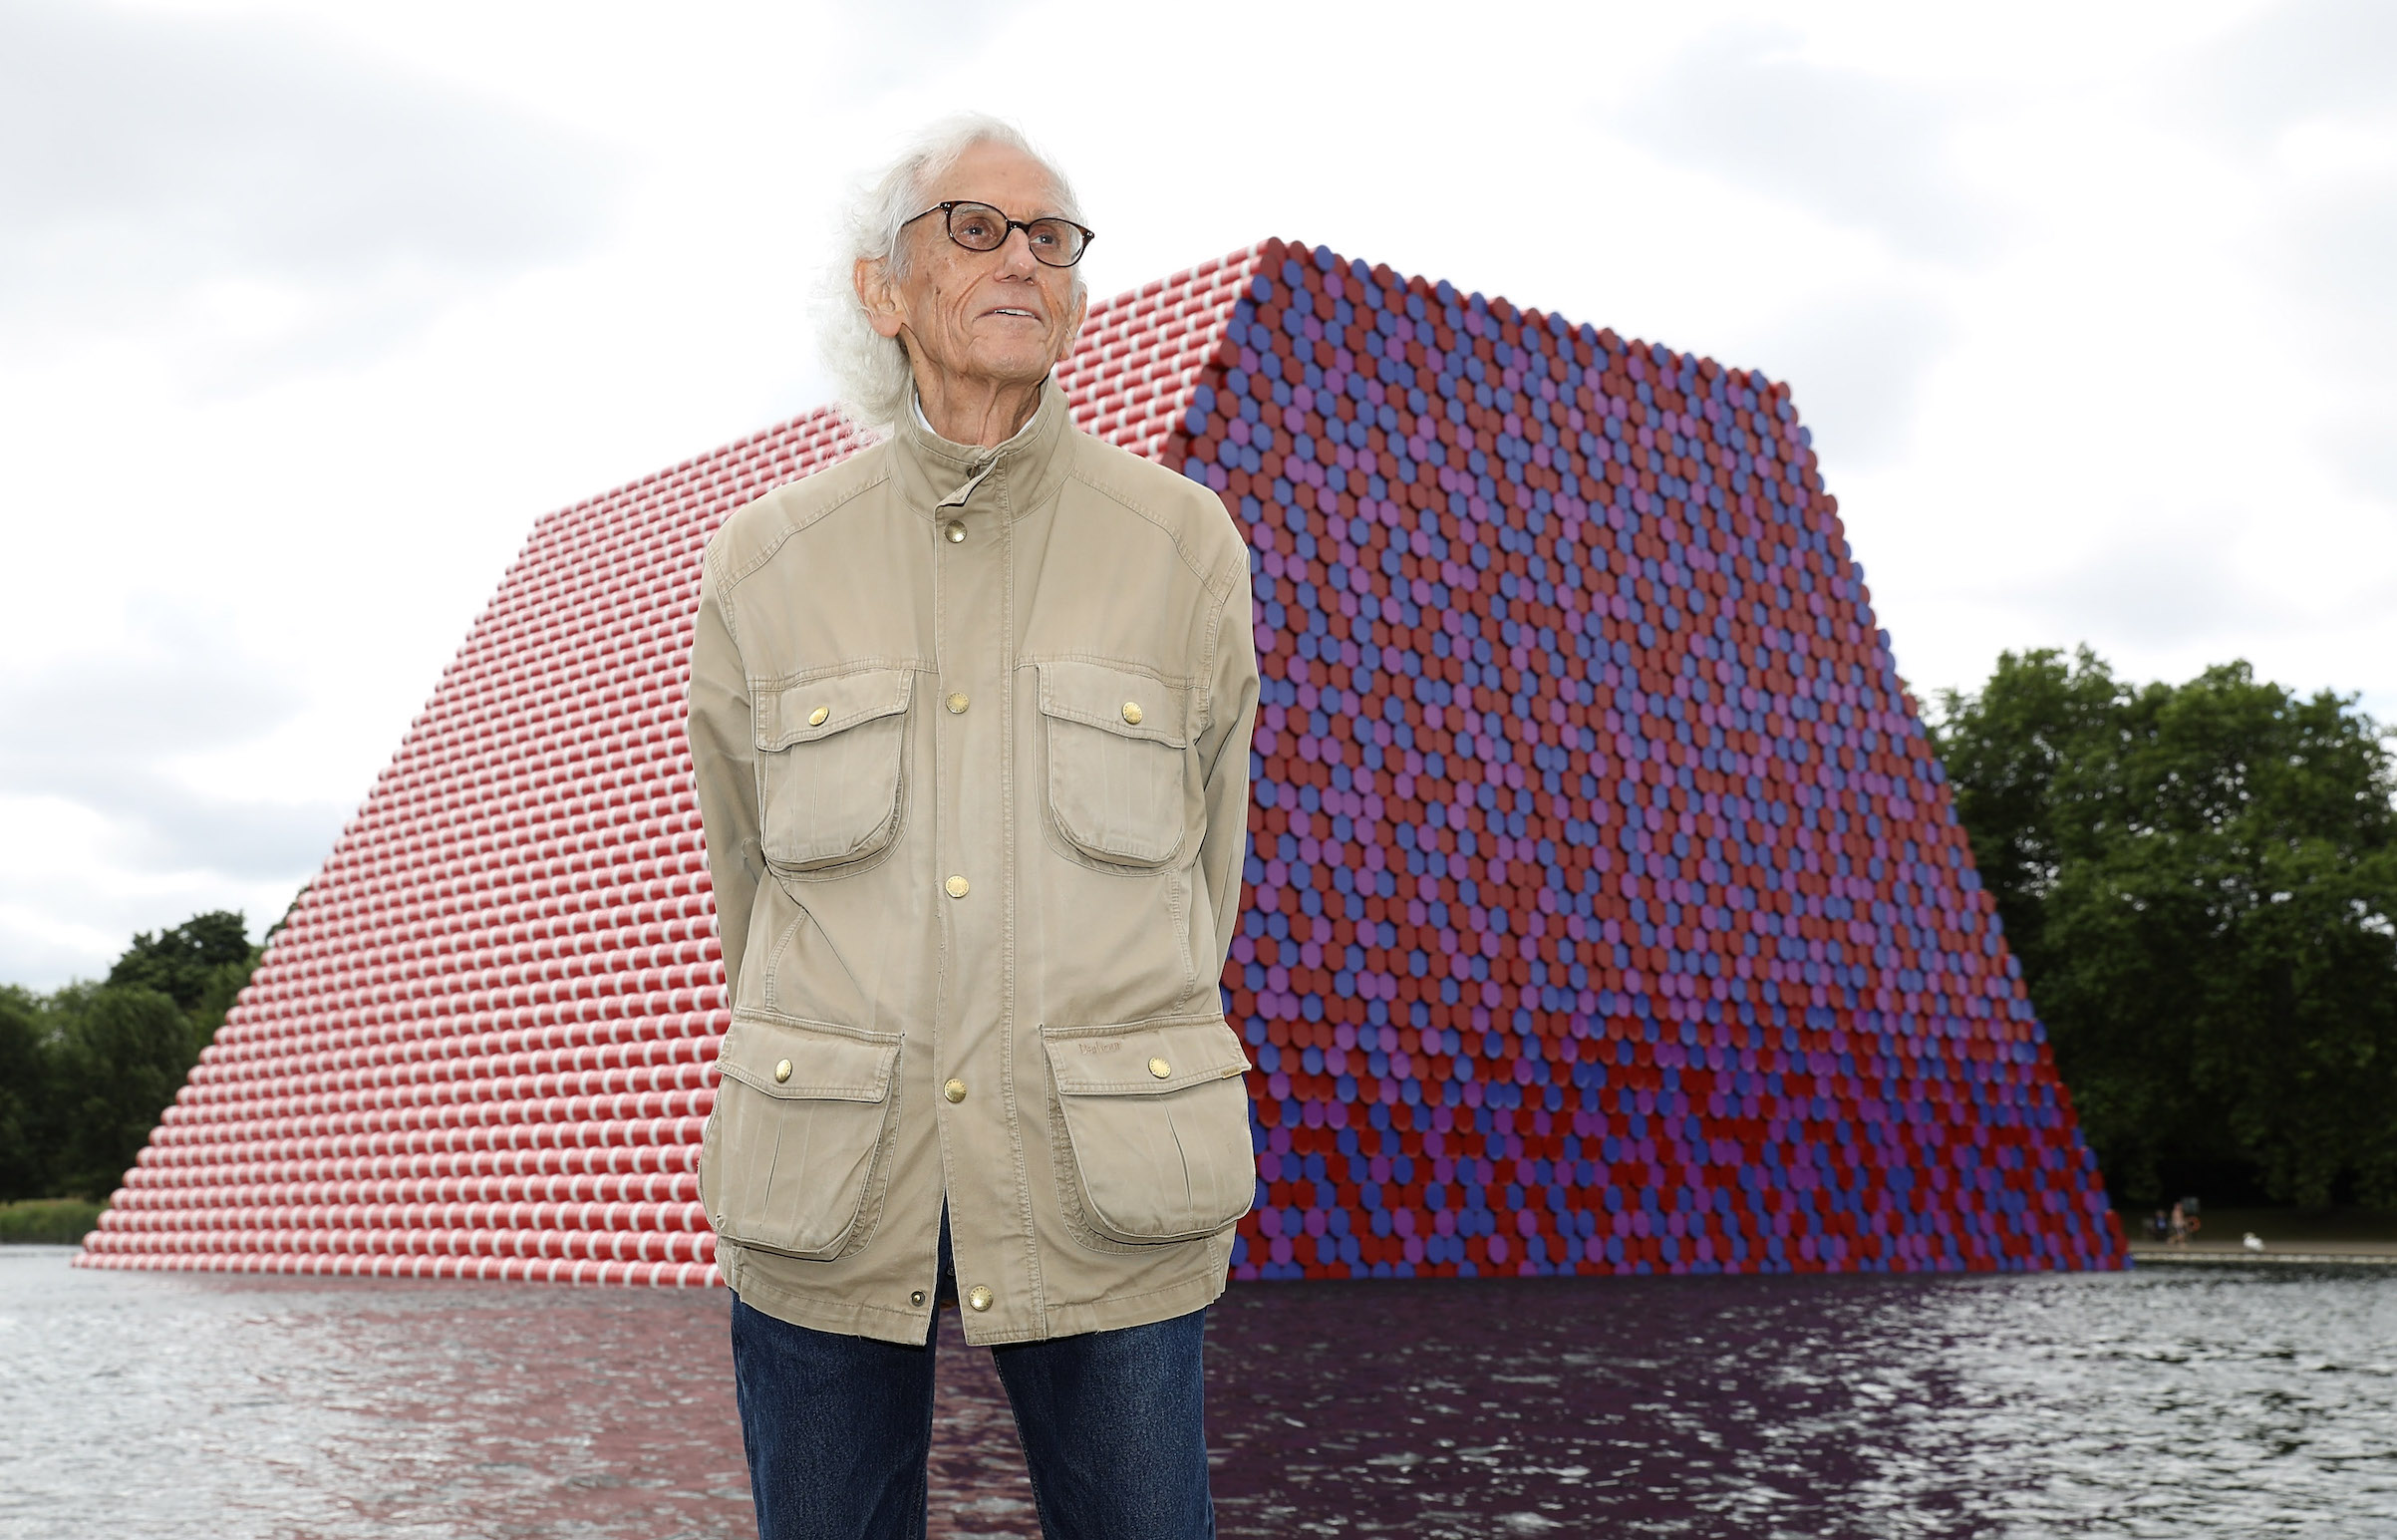 Christo unveils an installation on Serpentine Lake, with accompanying exhibition at the Serpentine Gallery on June 18, 2018 in London.